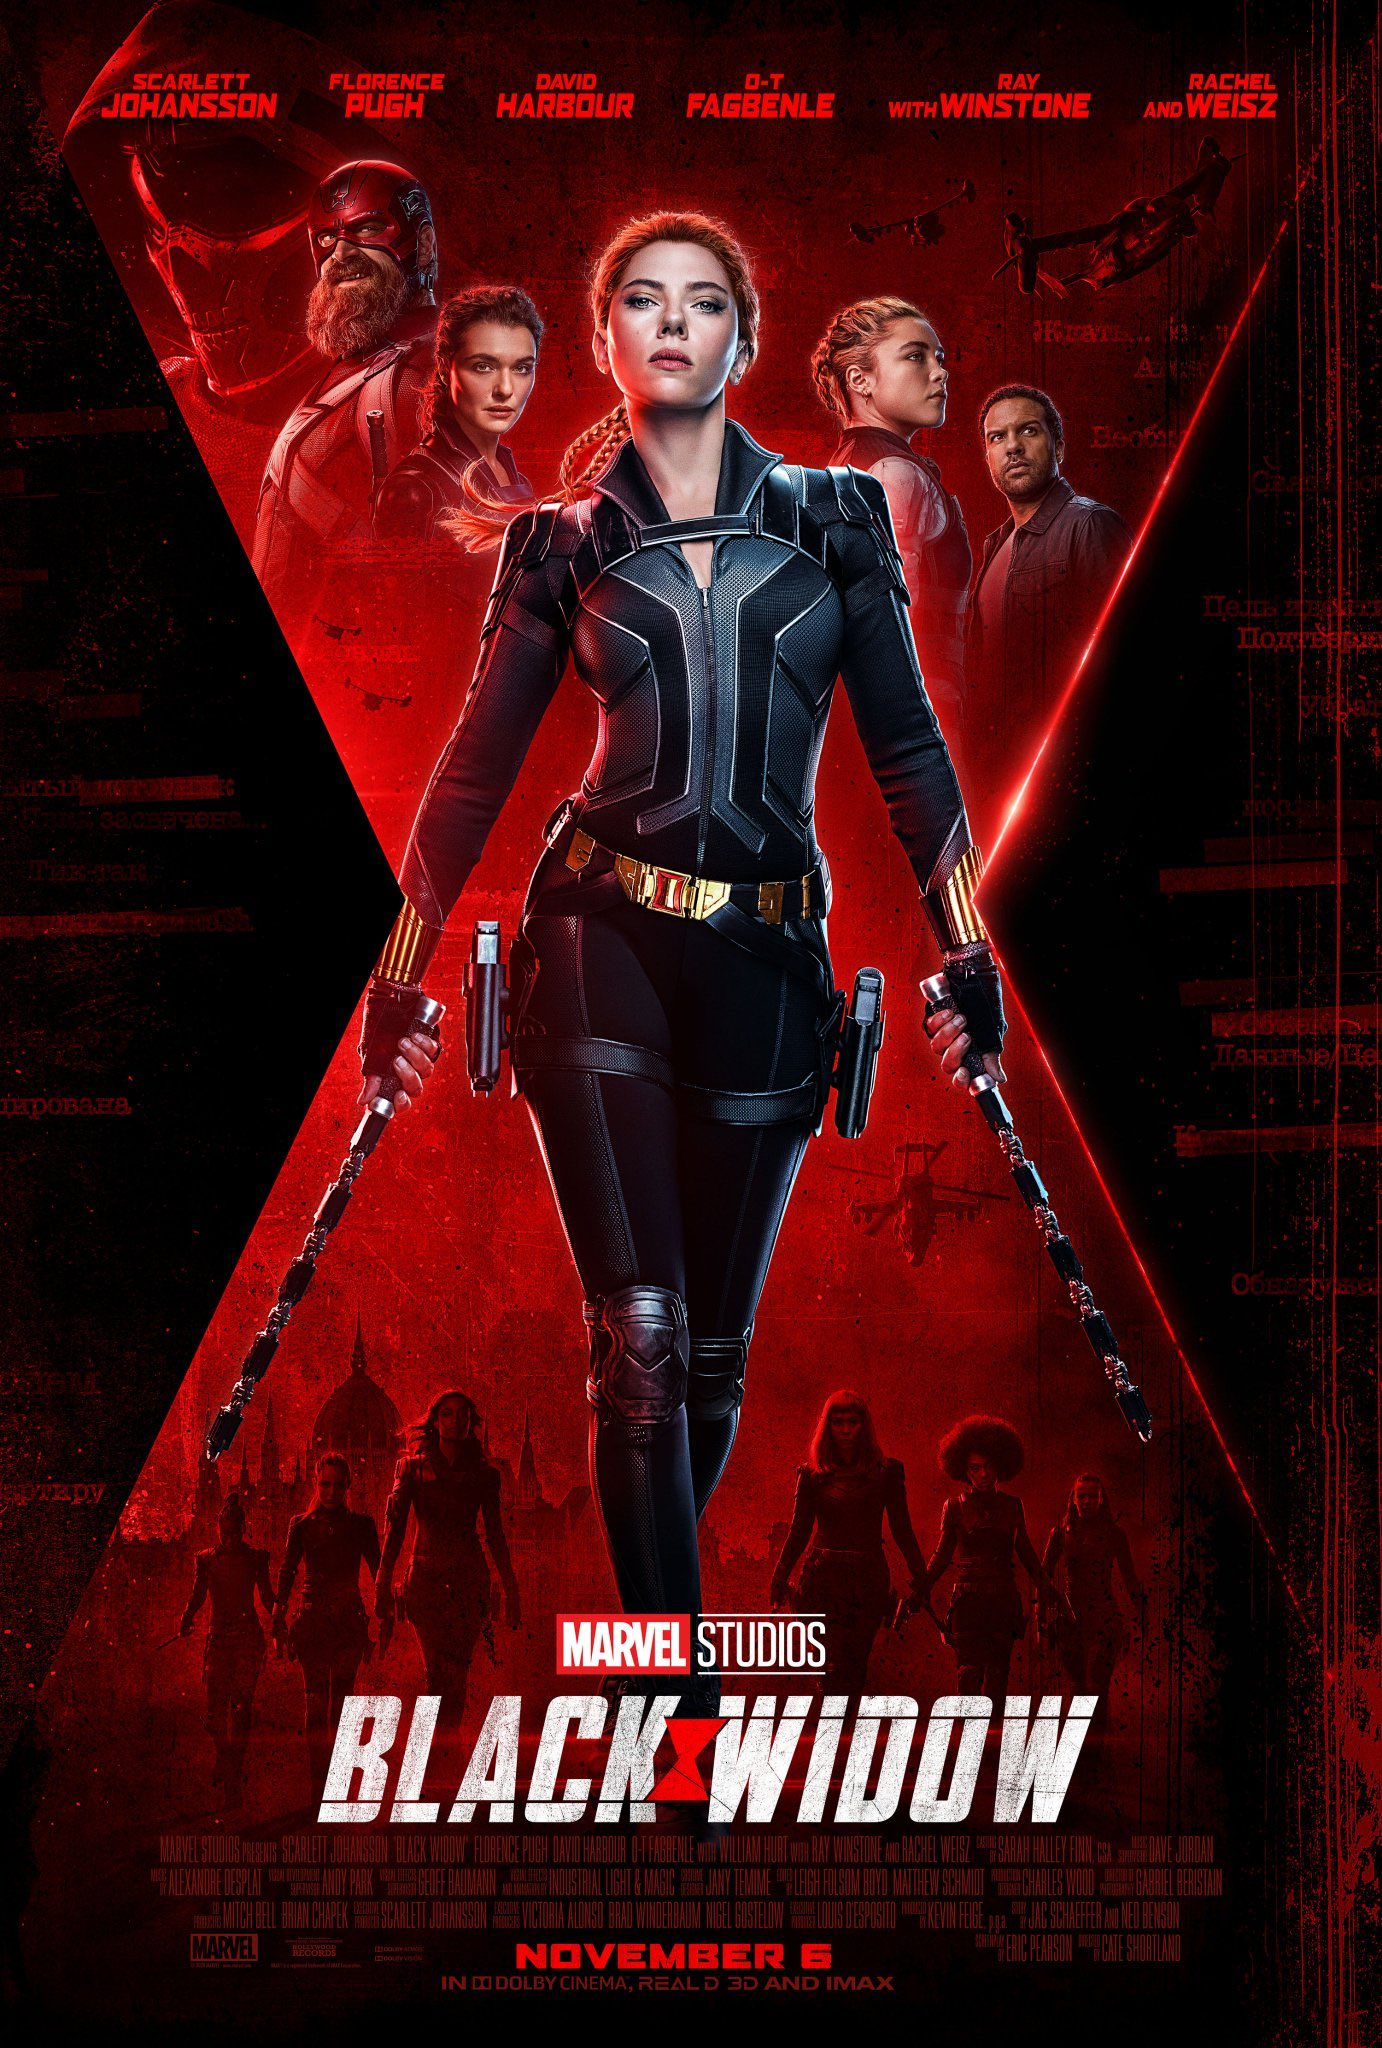 A big thick X in the back with Black Widow in the center